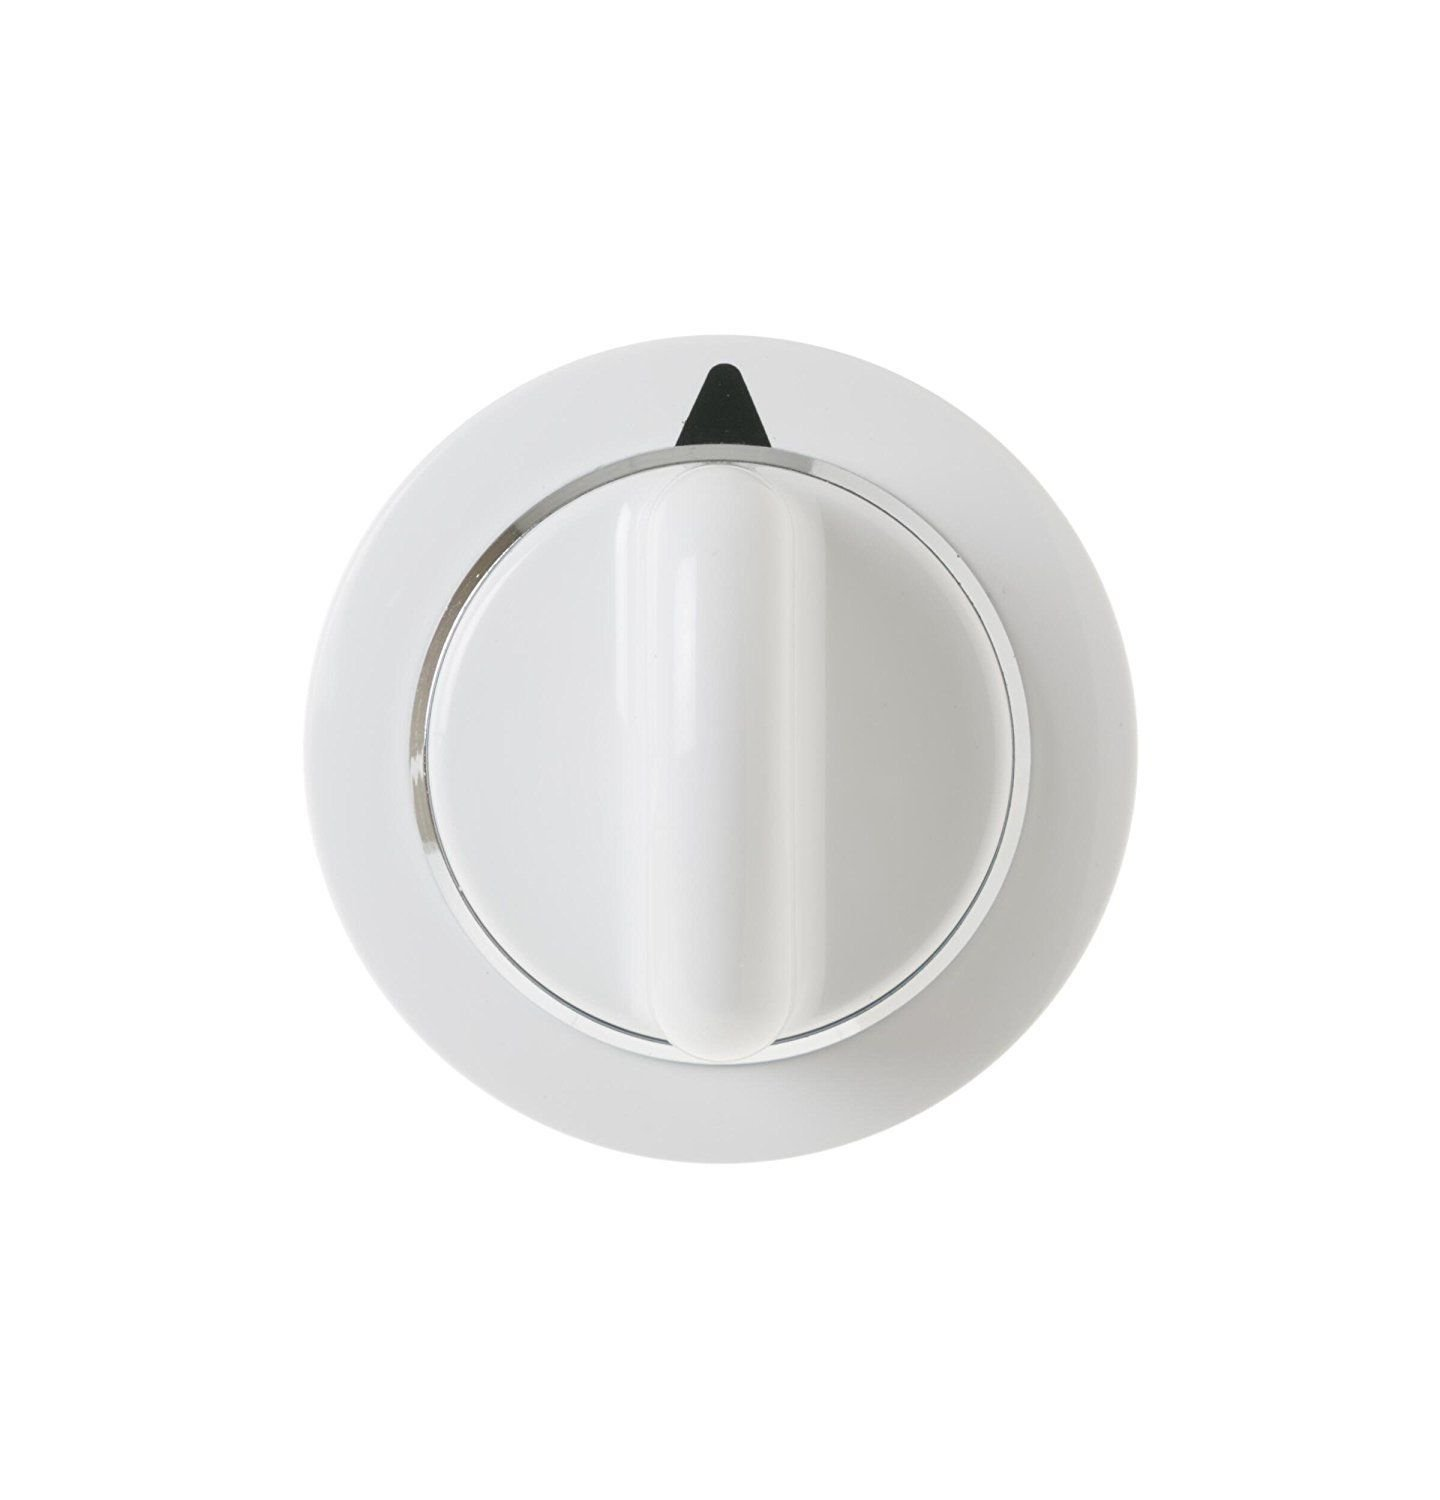 White Dryer Timer Knob Assembly Part For General Electric Hotpoint GE Dryer WE1M654 HQAPR